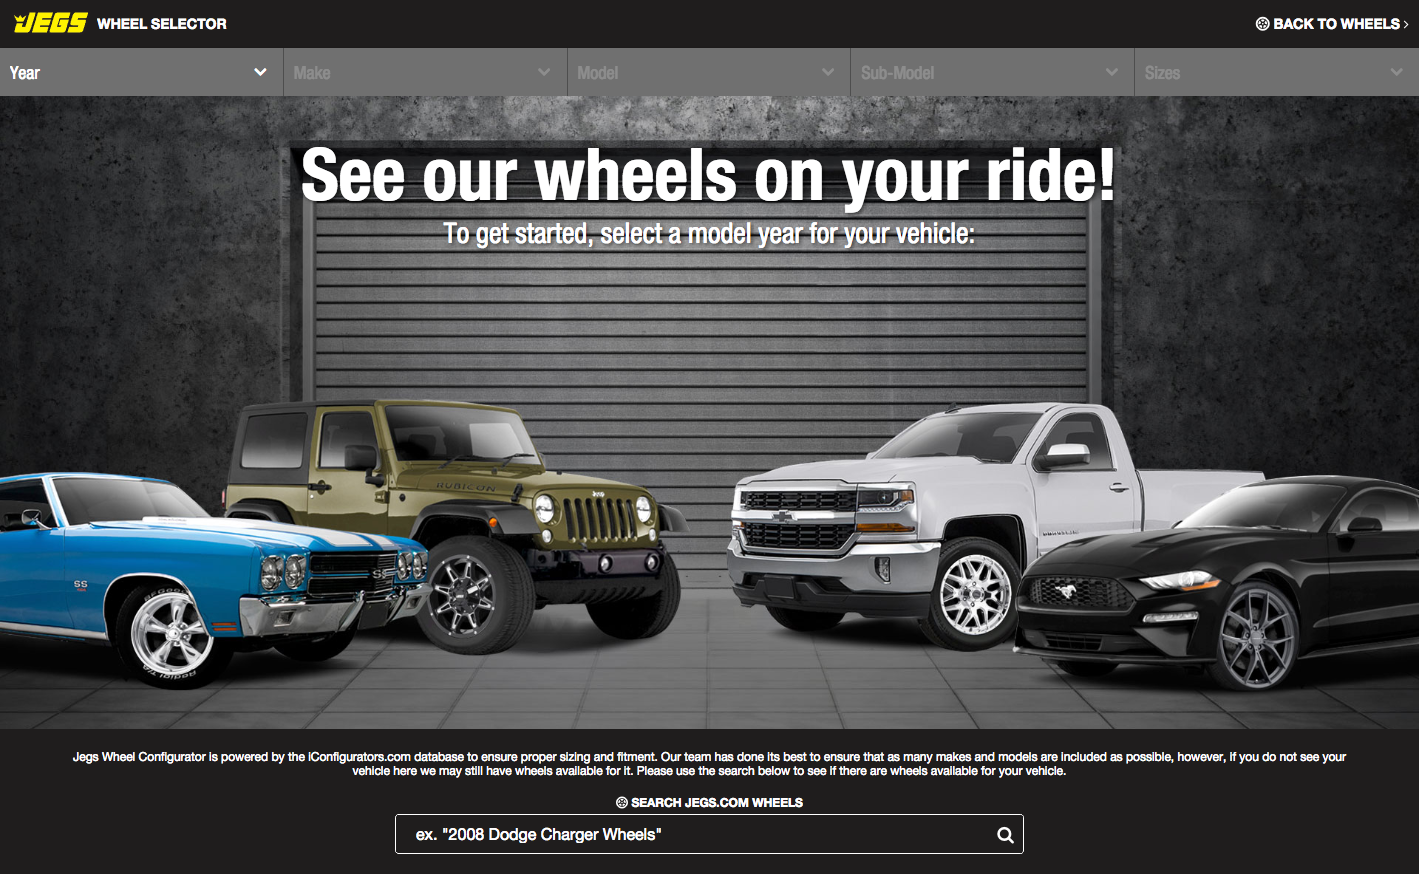 screencapture-jegs-wheels-wheelconfig-html-2019-01-04-15_31_52.png